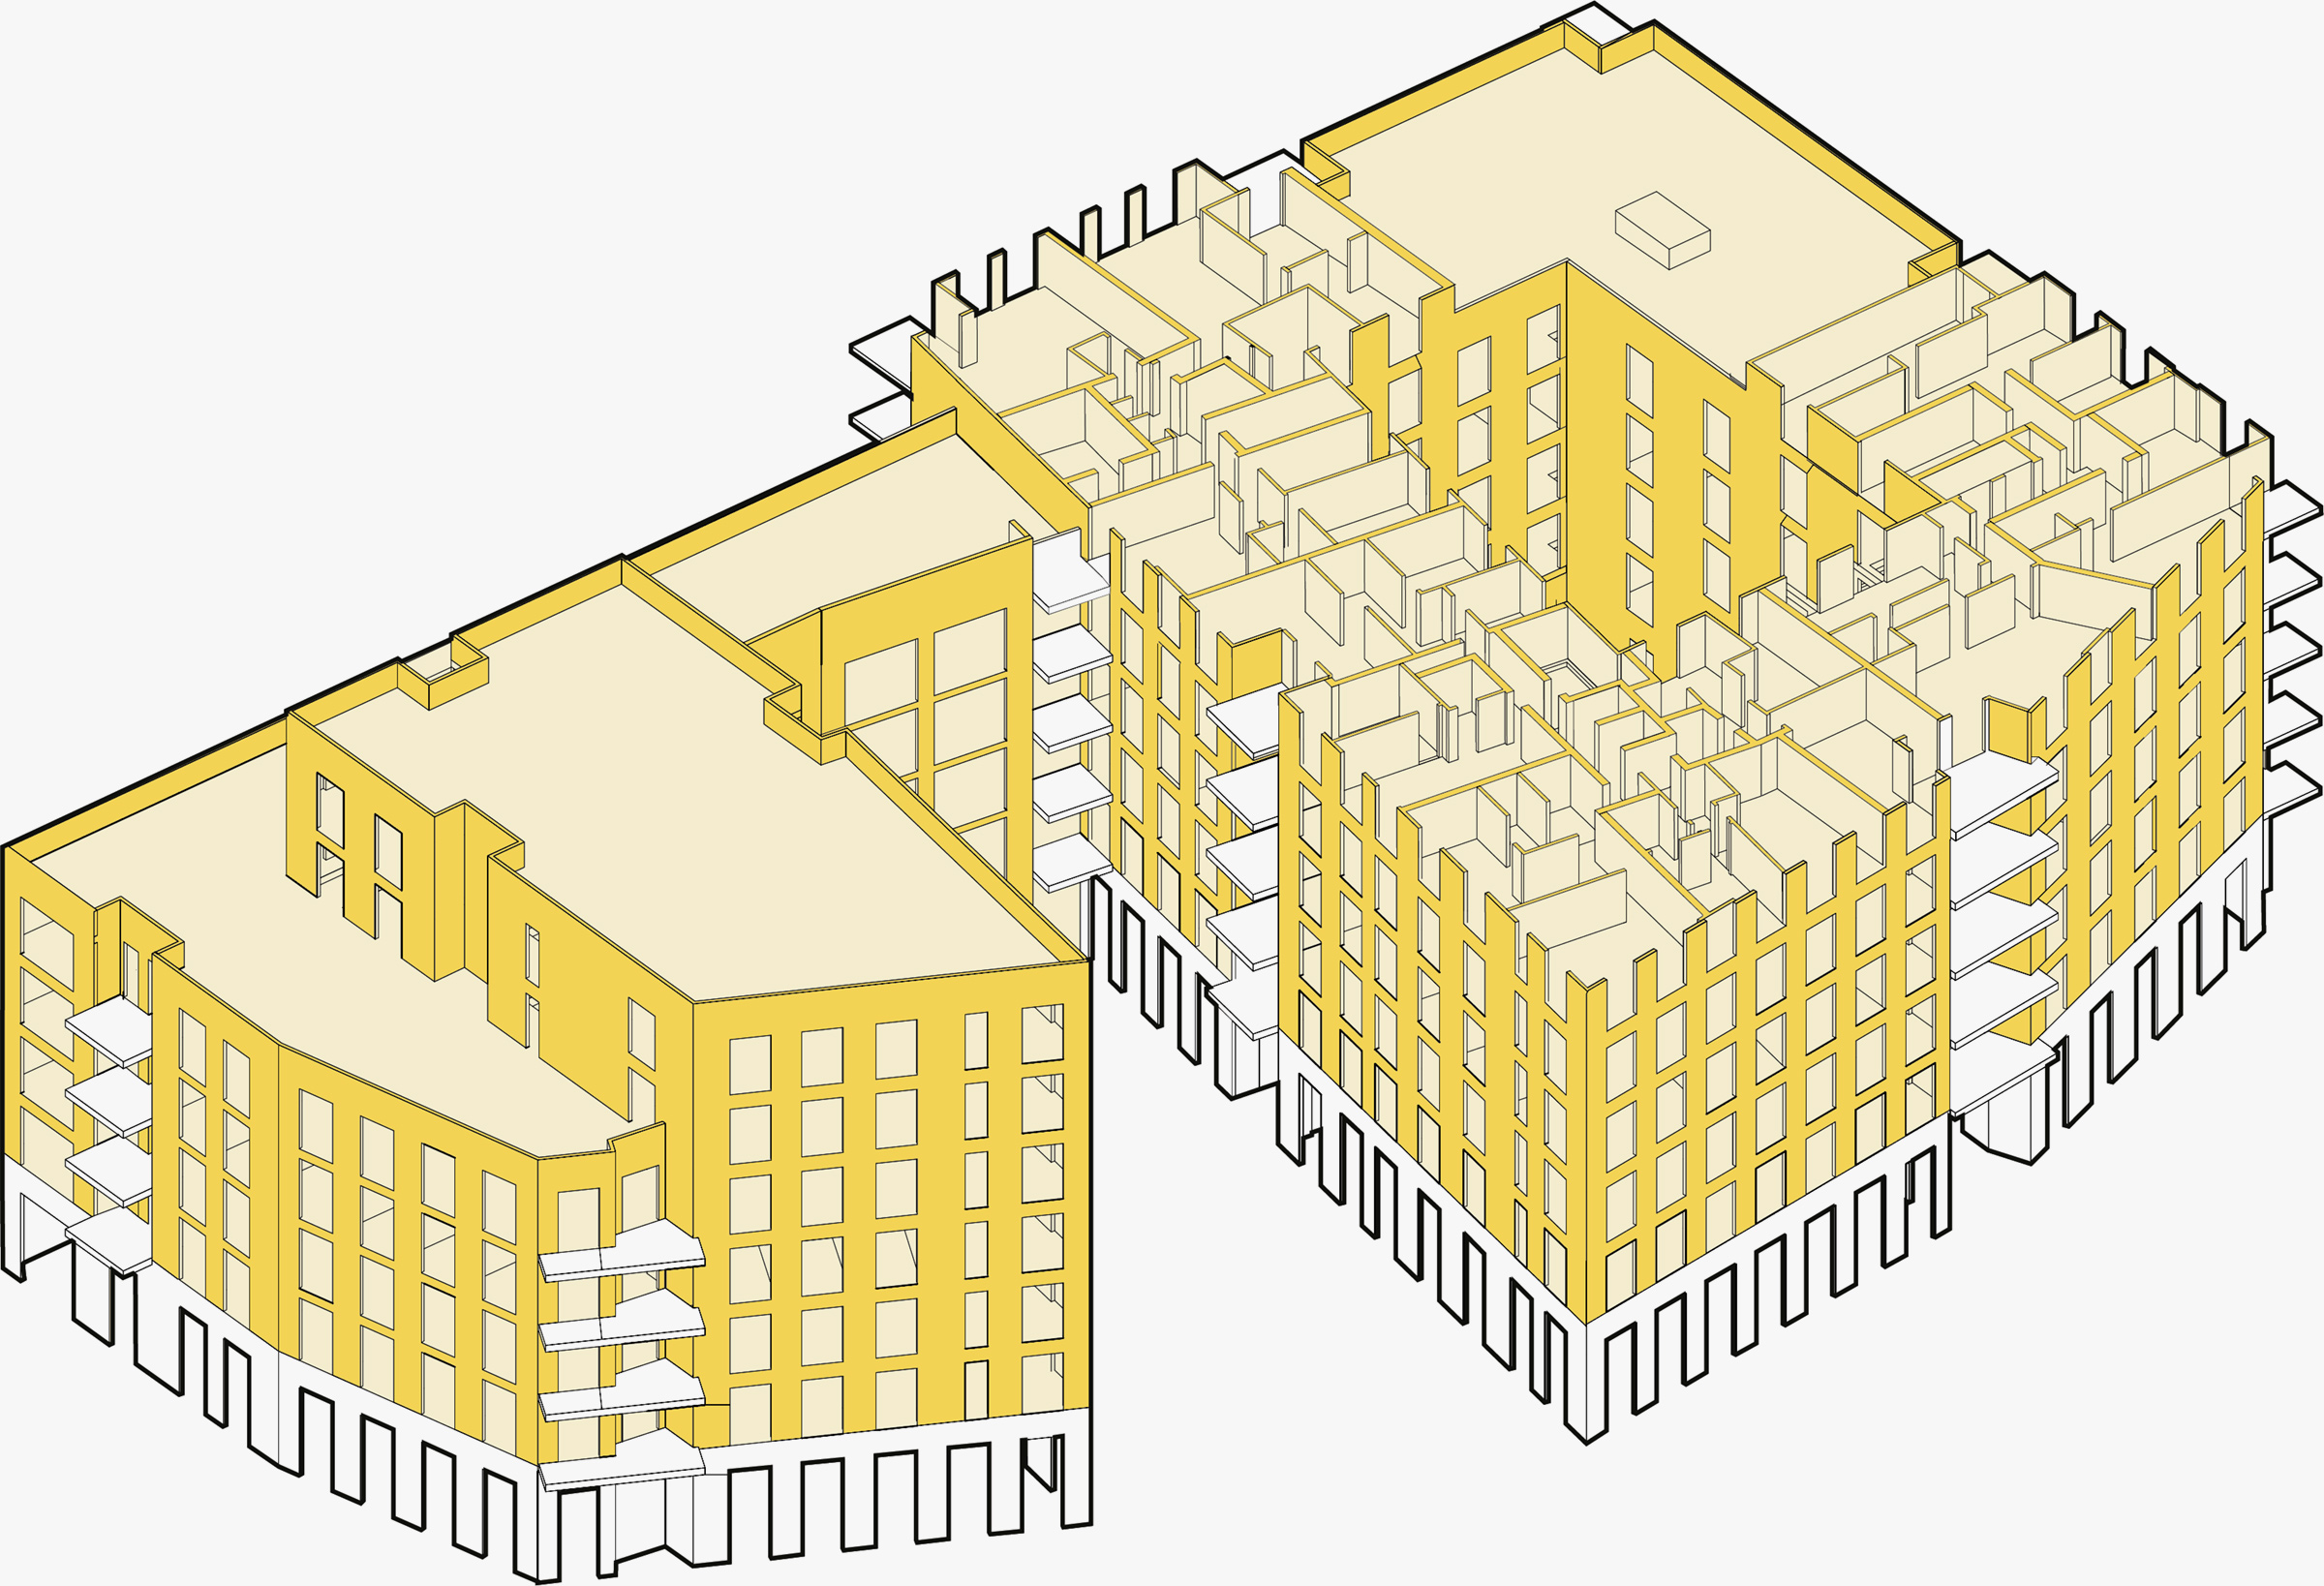 Dalston Works: sectional drawing, showing CLT panel construction